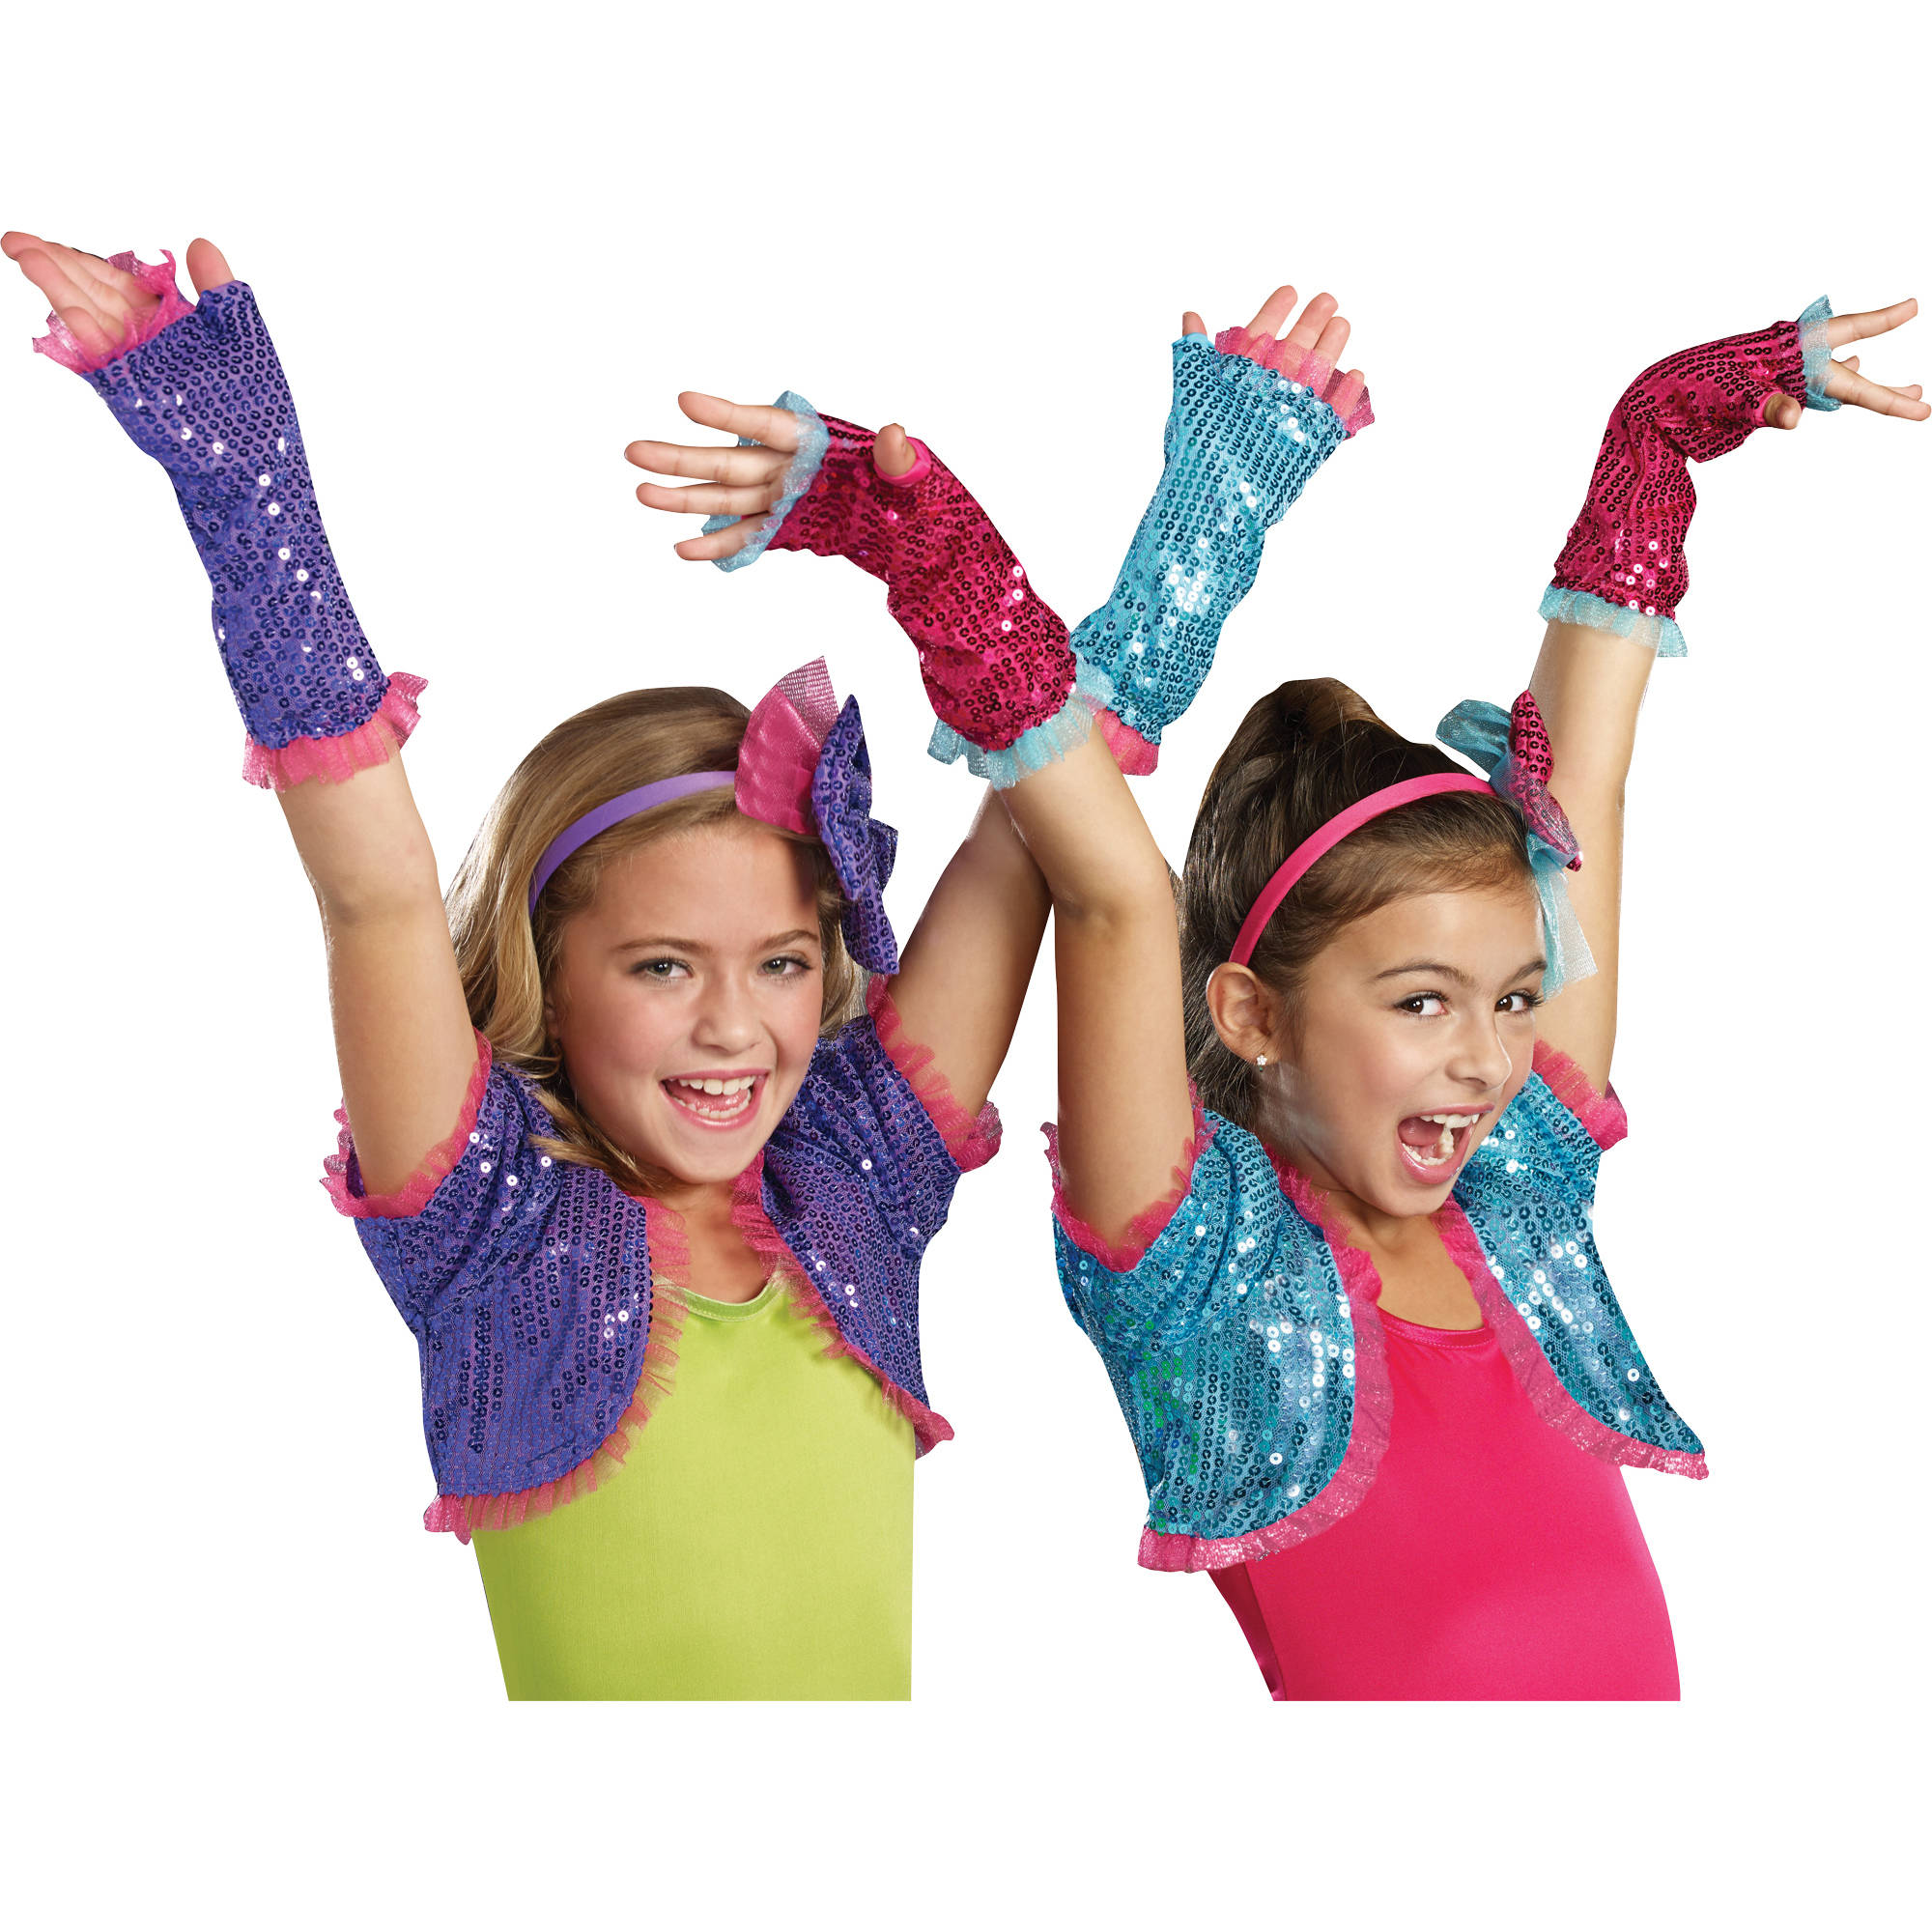 Pink Dance Craze Arm Warmers Child Halloween Accessory